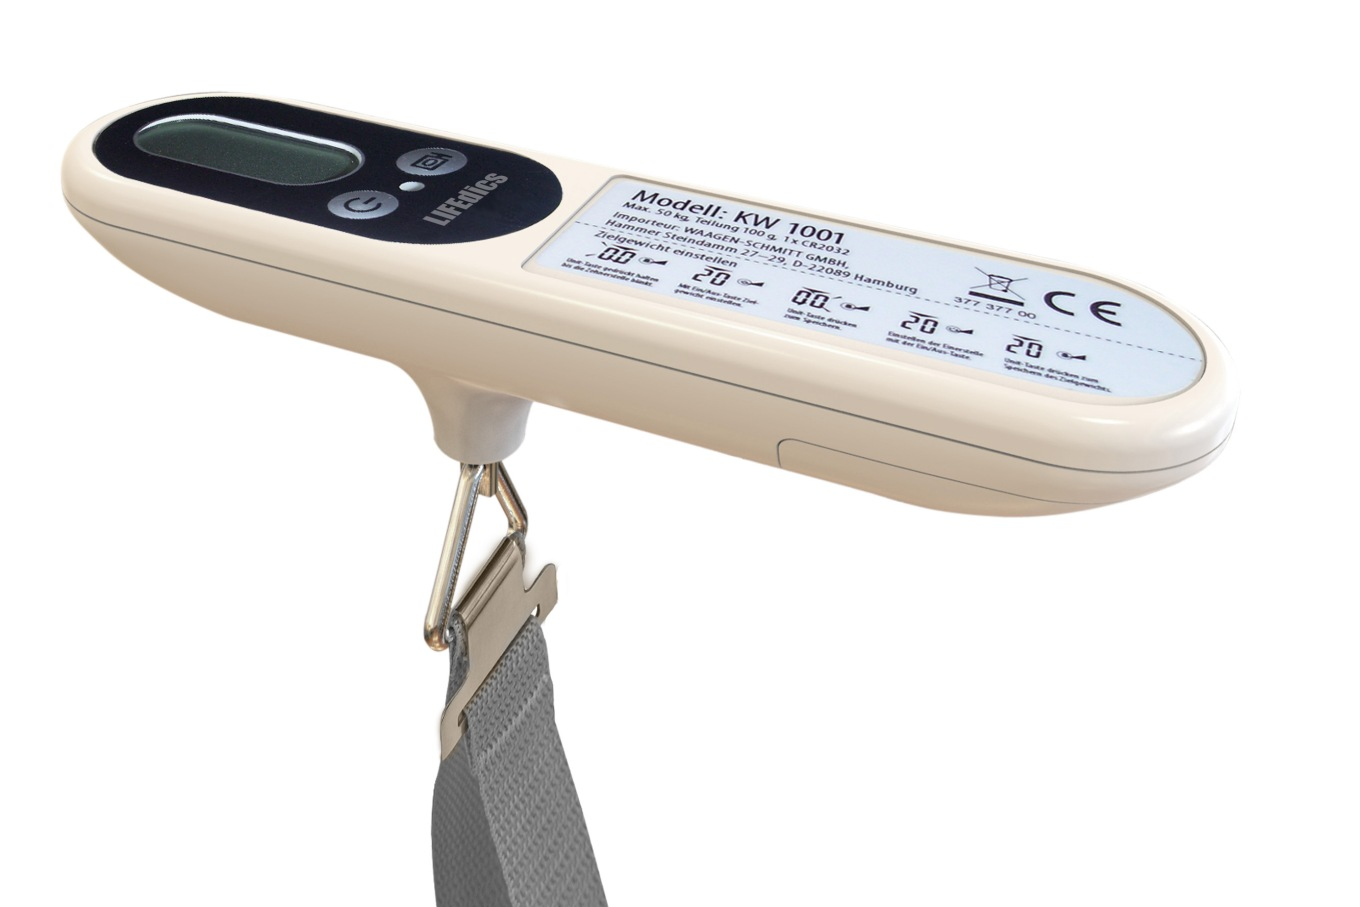 LE-L007_white_luggage_scale.jpg